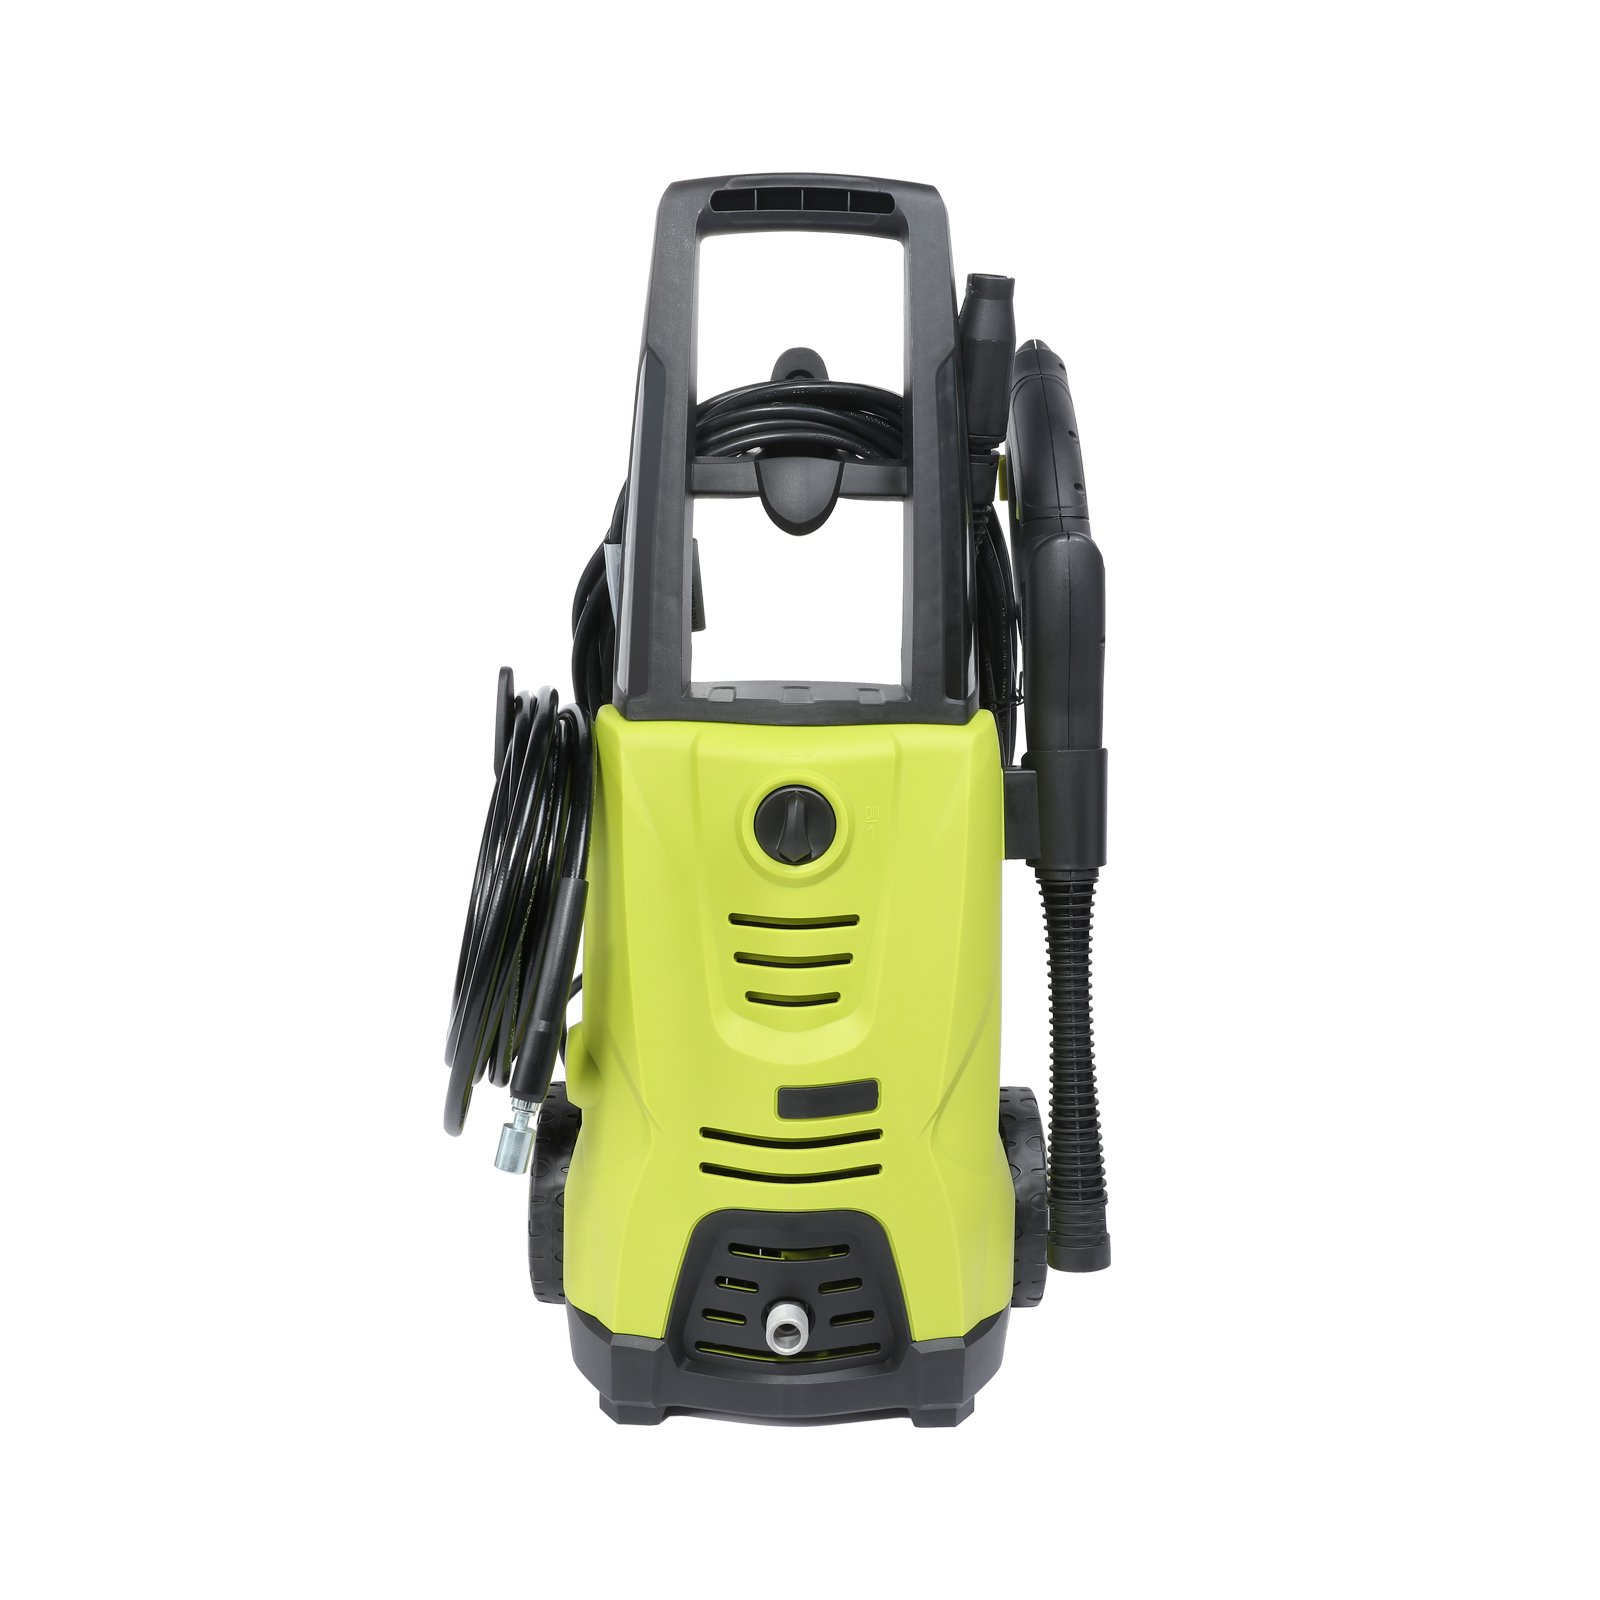 Magshion JMG-3114M Electric Pressure Washer with Spray Gun & High Pressure Foam 1600 psi